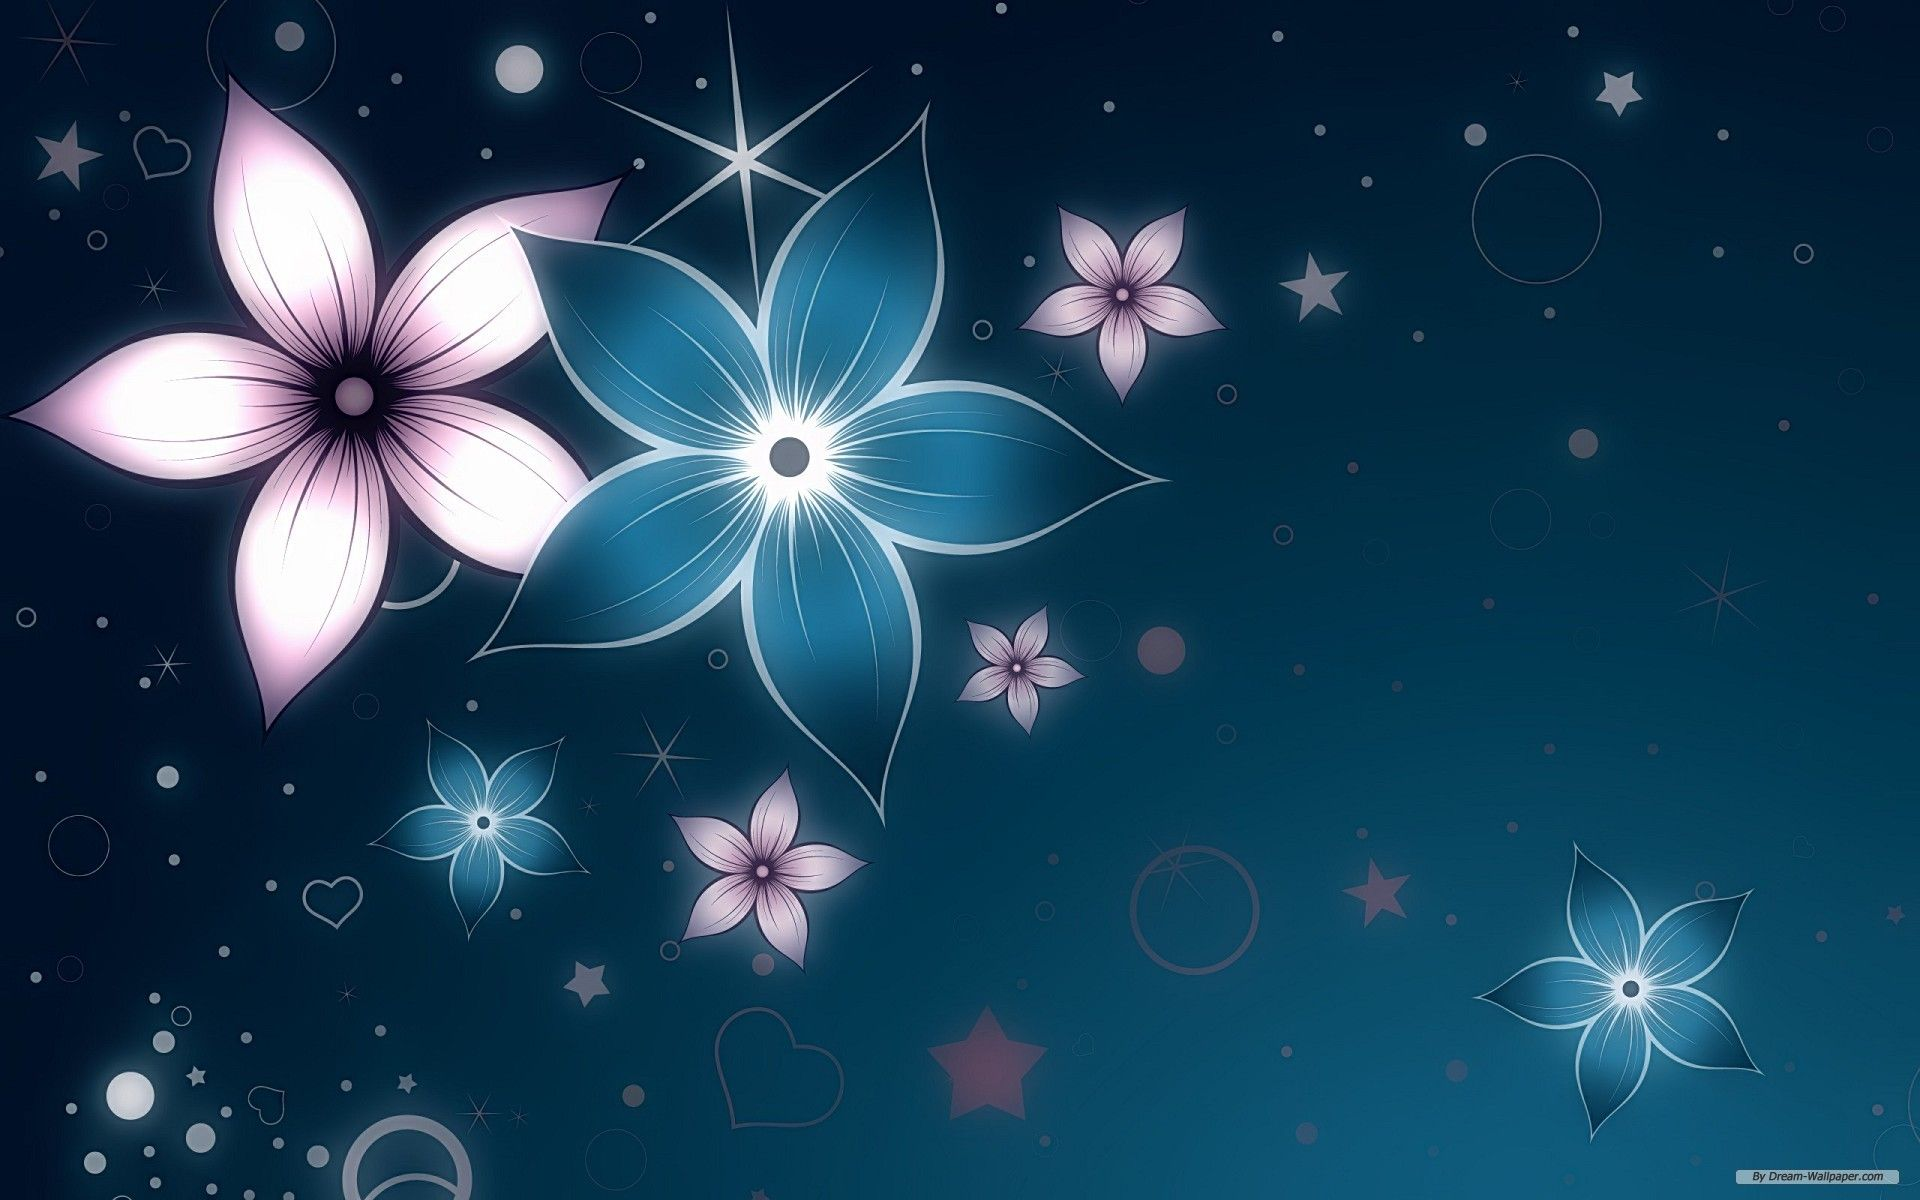 Fantasy Flowers Wallpaper Abstract Flowers Cool Background Designs Abstract Wallpaper